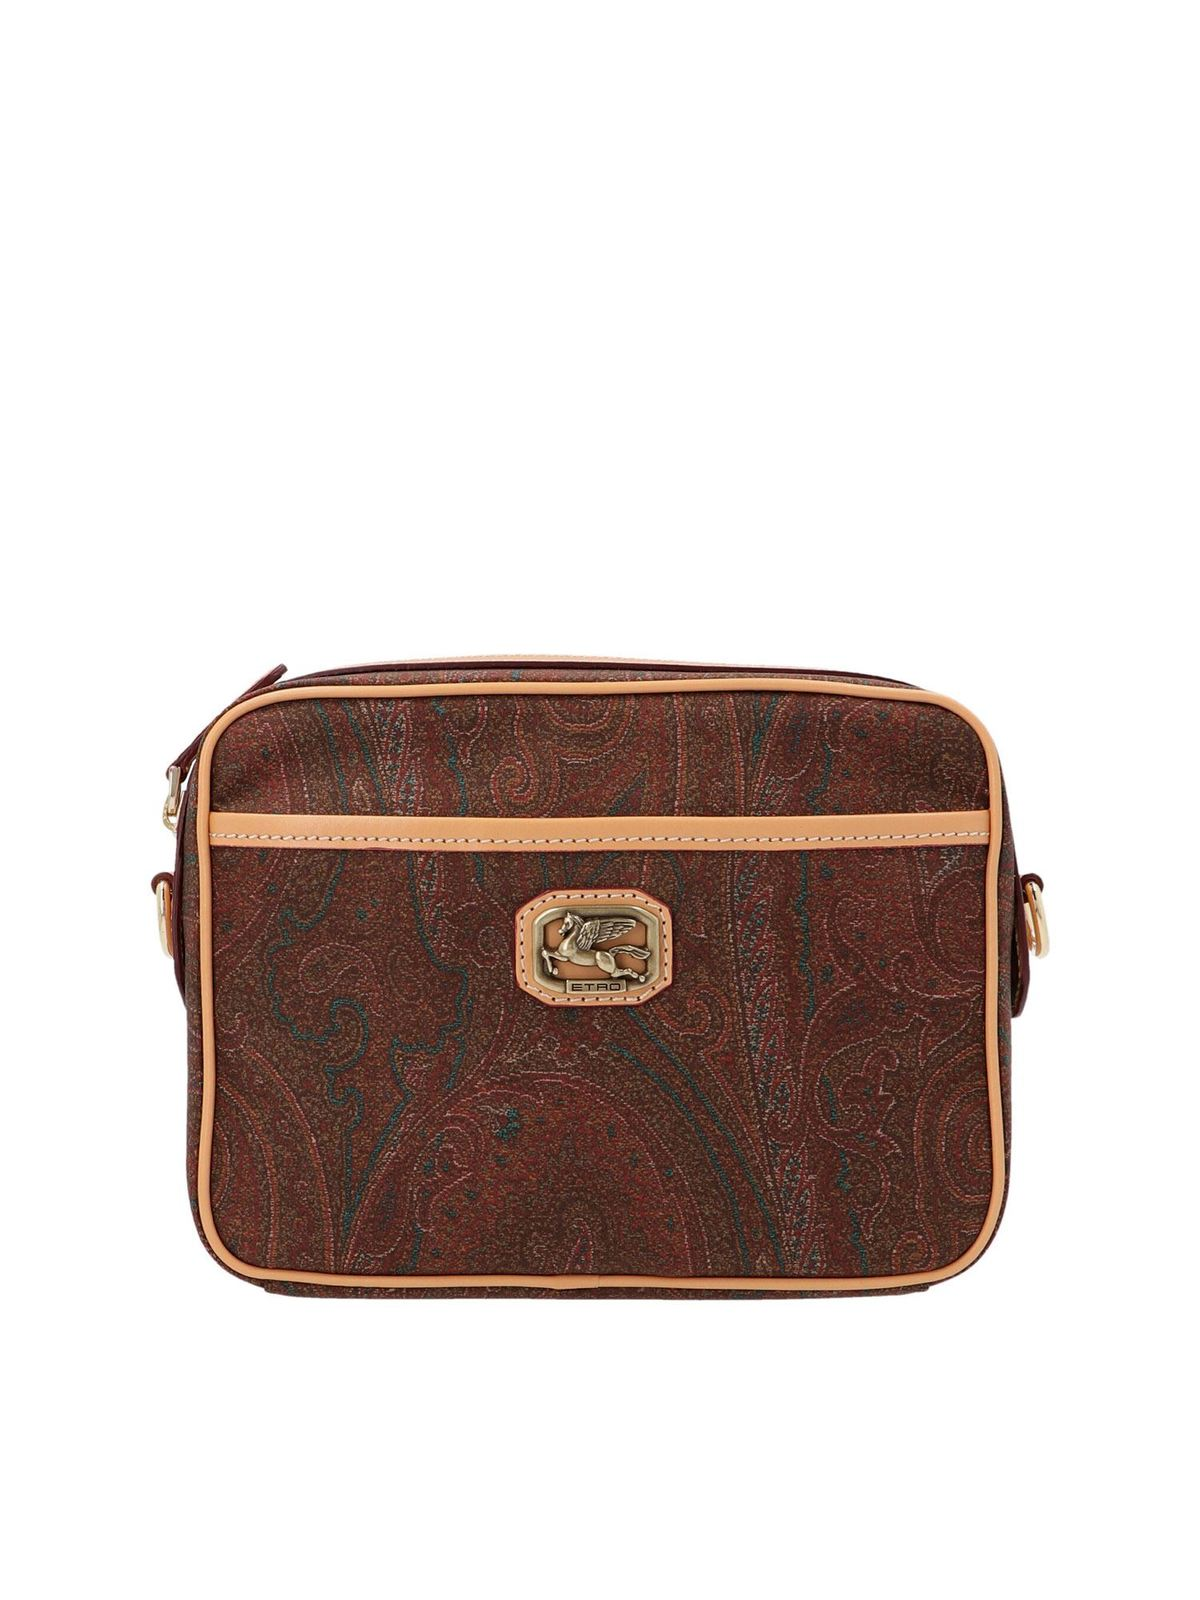 Etro PAISLEY CROSSBODY BAG IN MULTICOLOR